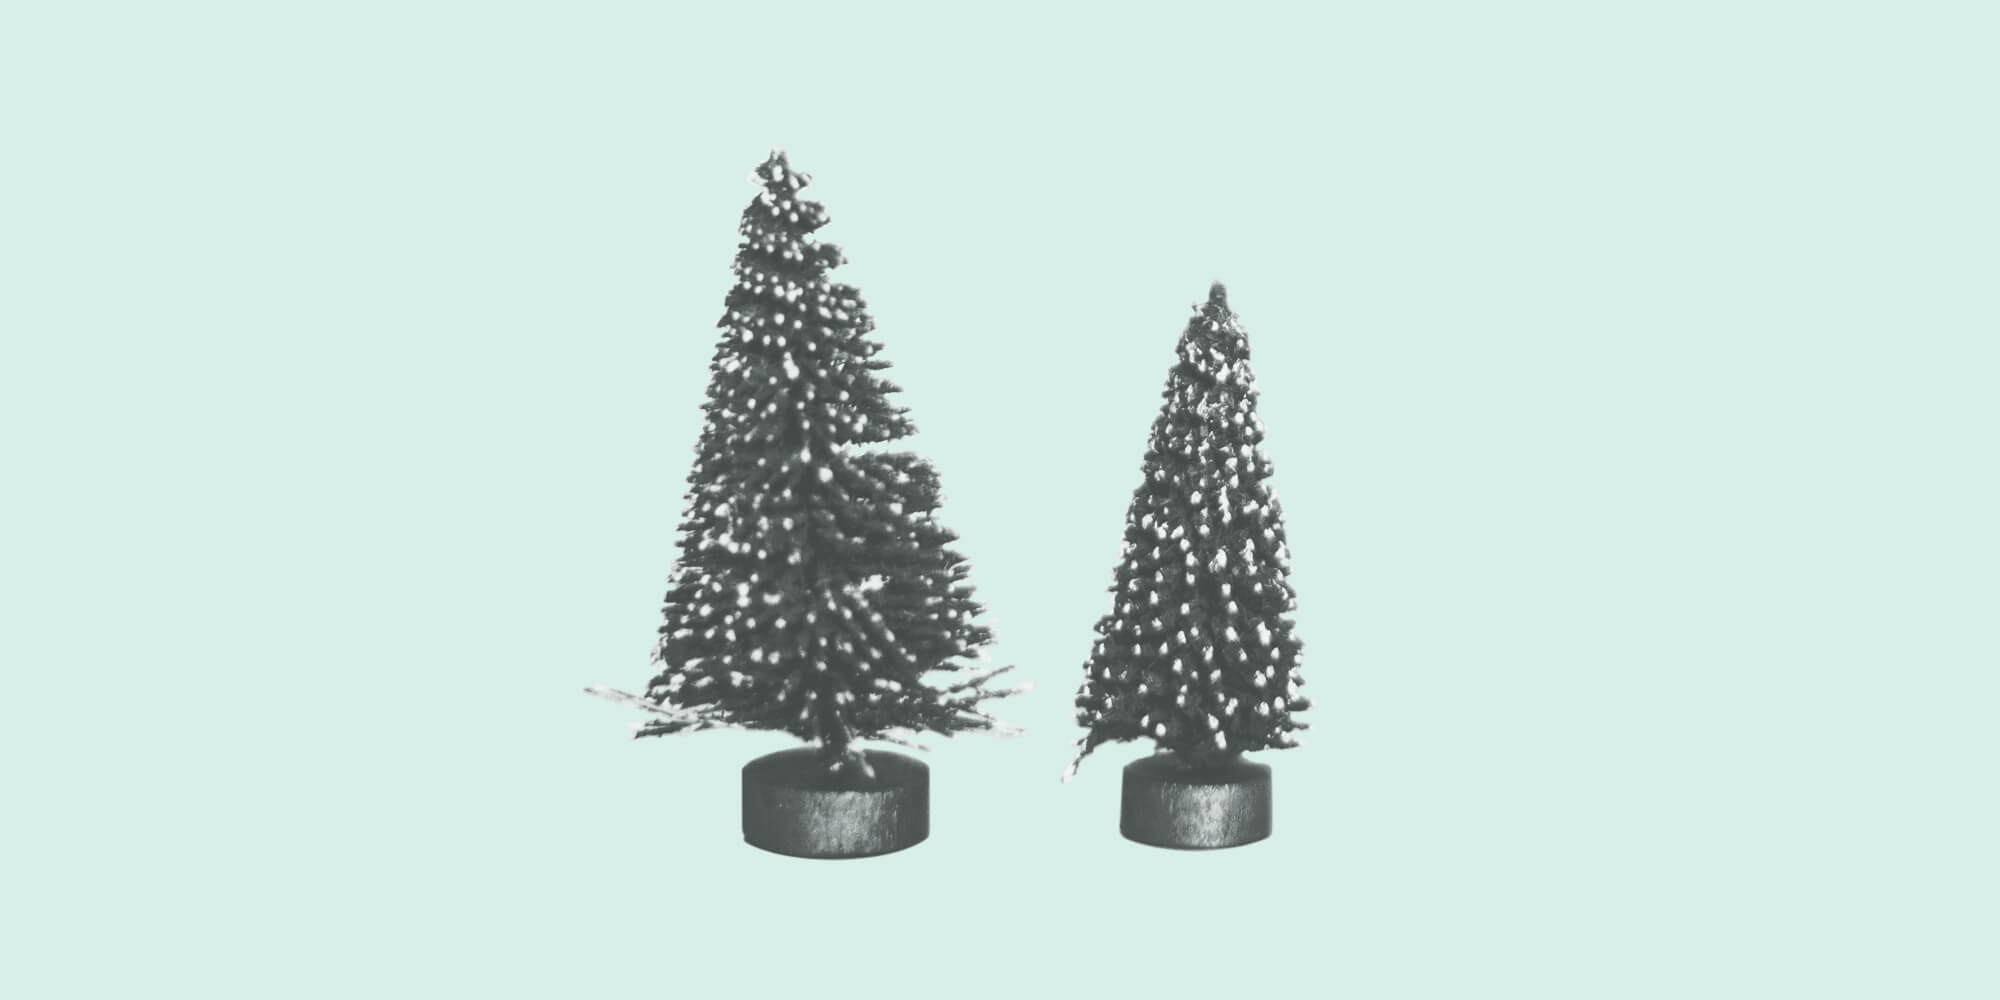 Tiny decorative pine trees on a light green background. Holiday Stress.